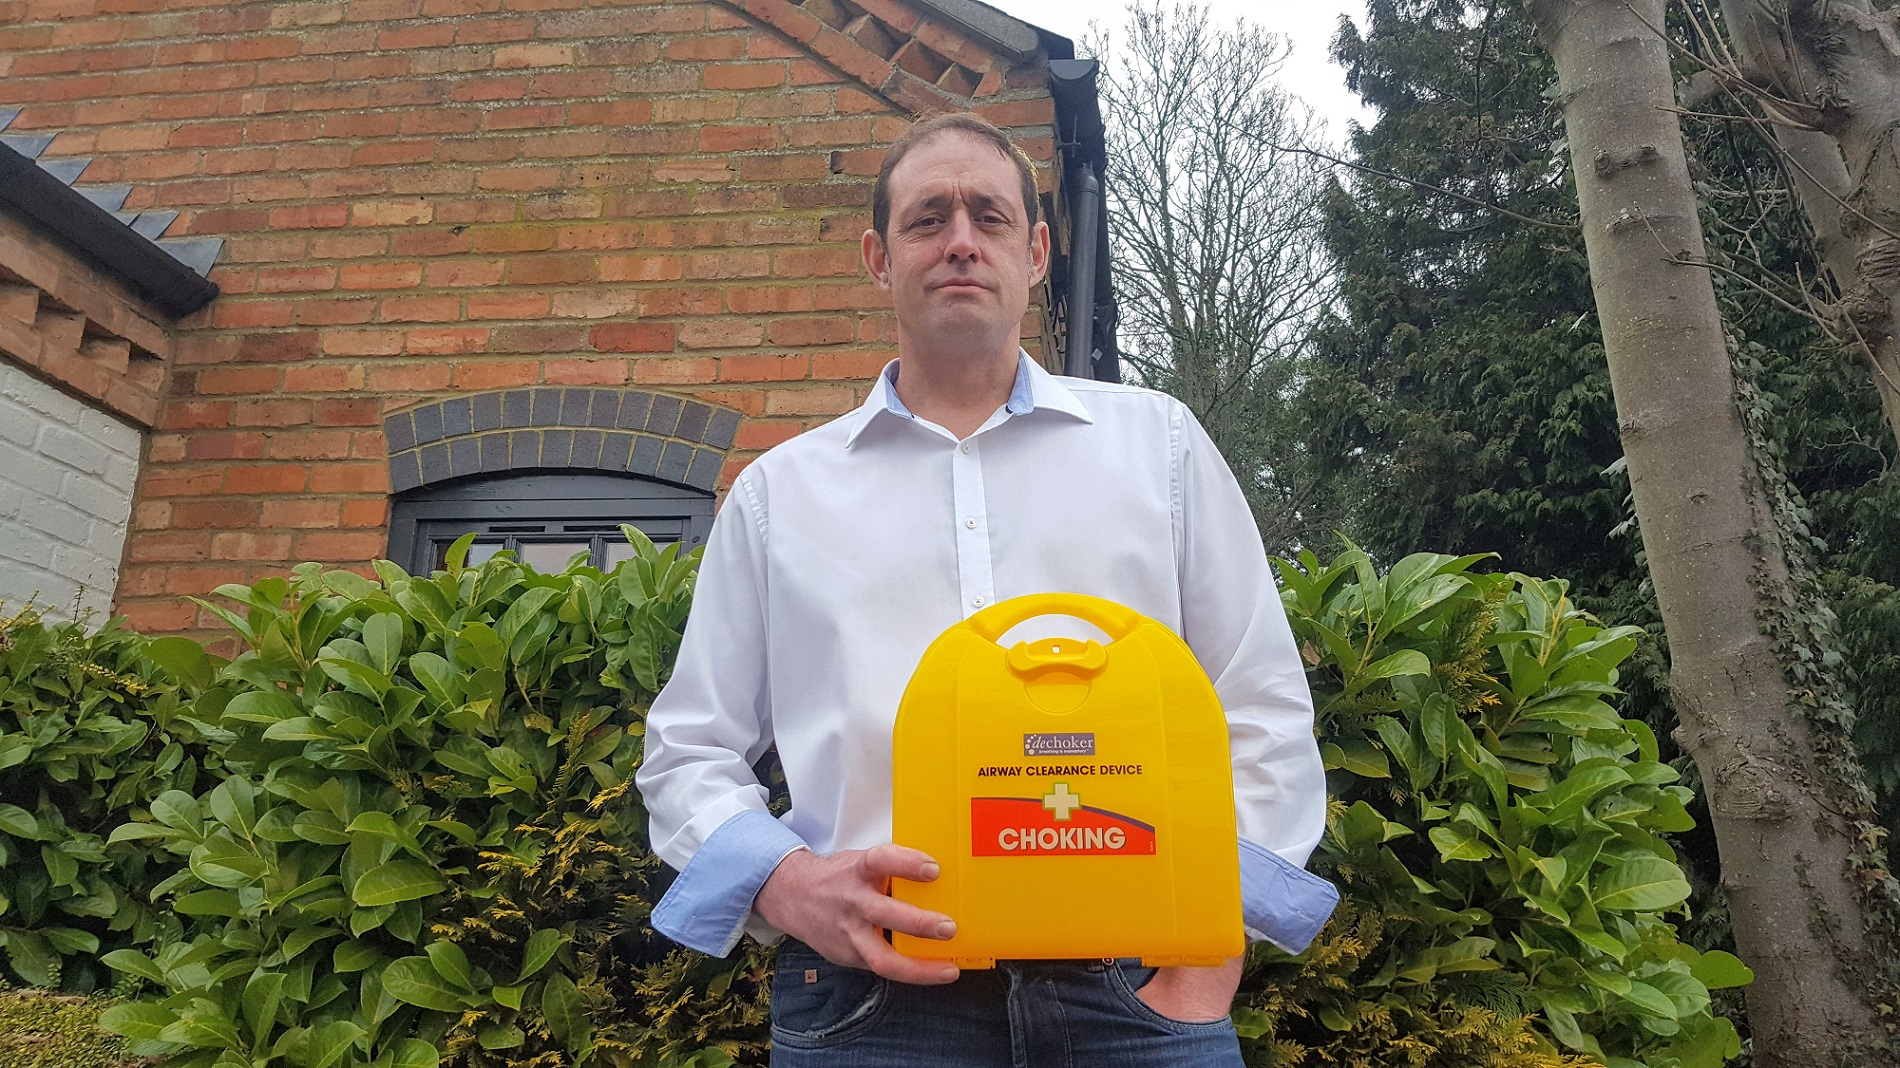 NORTHAMPTONSHIRE FIRM BEHIND LIFESAVING CHOKING DEVICE RECEIVES £70K INVESTMENT